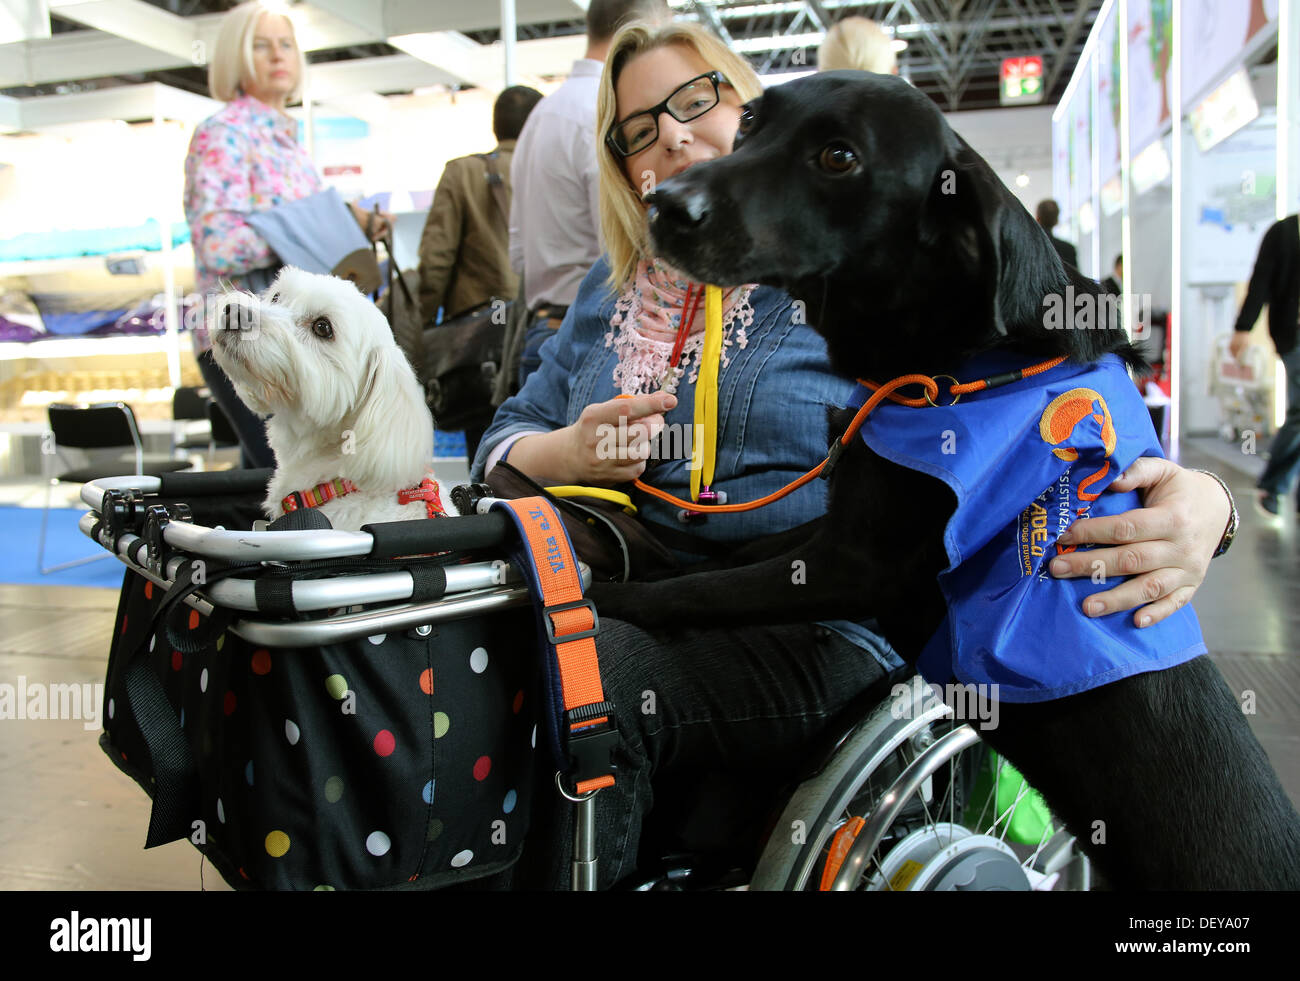 Assistant dog Rocko looks after her disabled master at their expo stand at the Rehacare trade fair in 25 September 2013. The trade fair for people with disabilites runs from 25 until 28 September 2013. Photo: ROLANDWEIHRAUCH - Stock Image